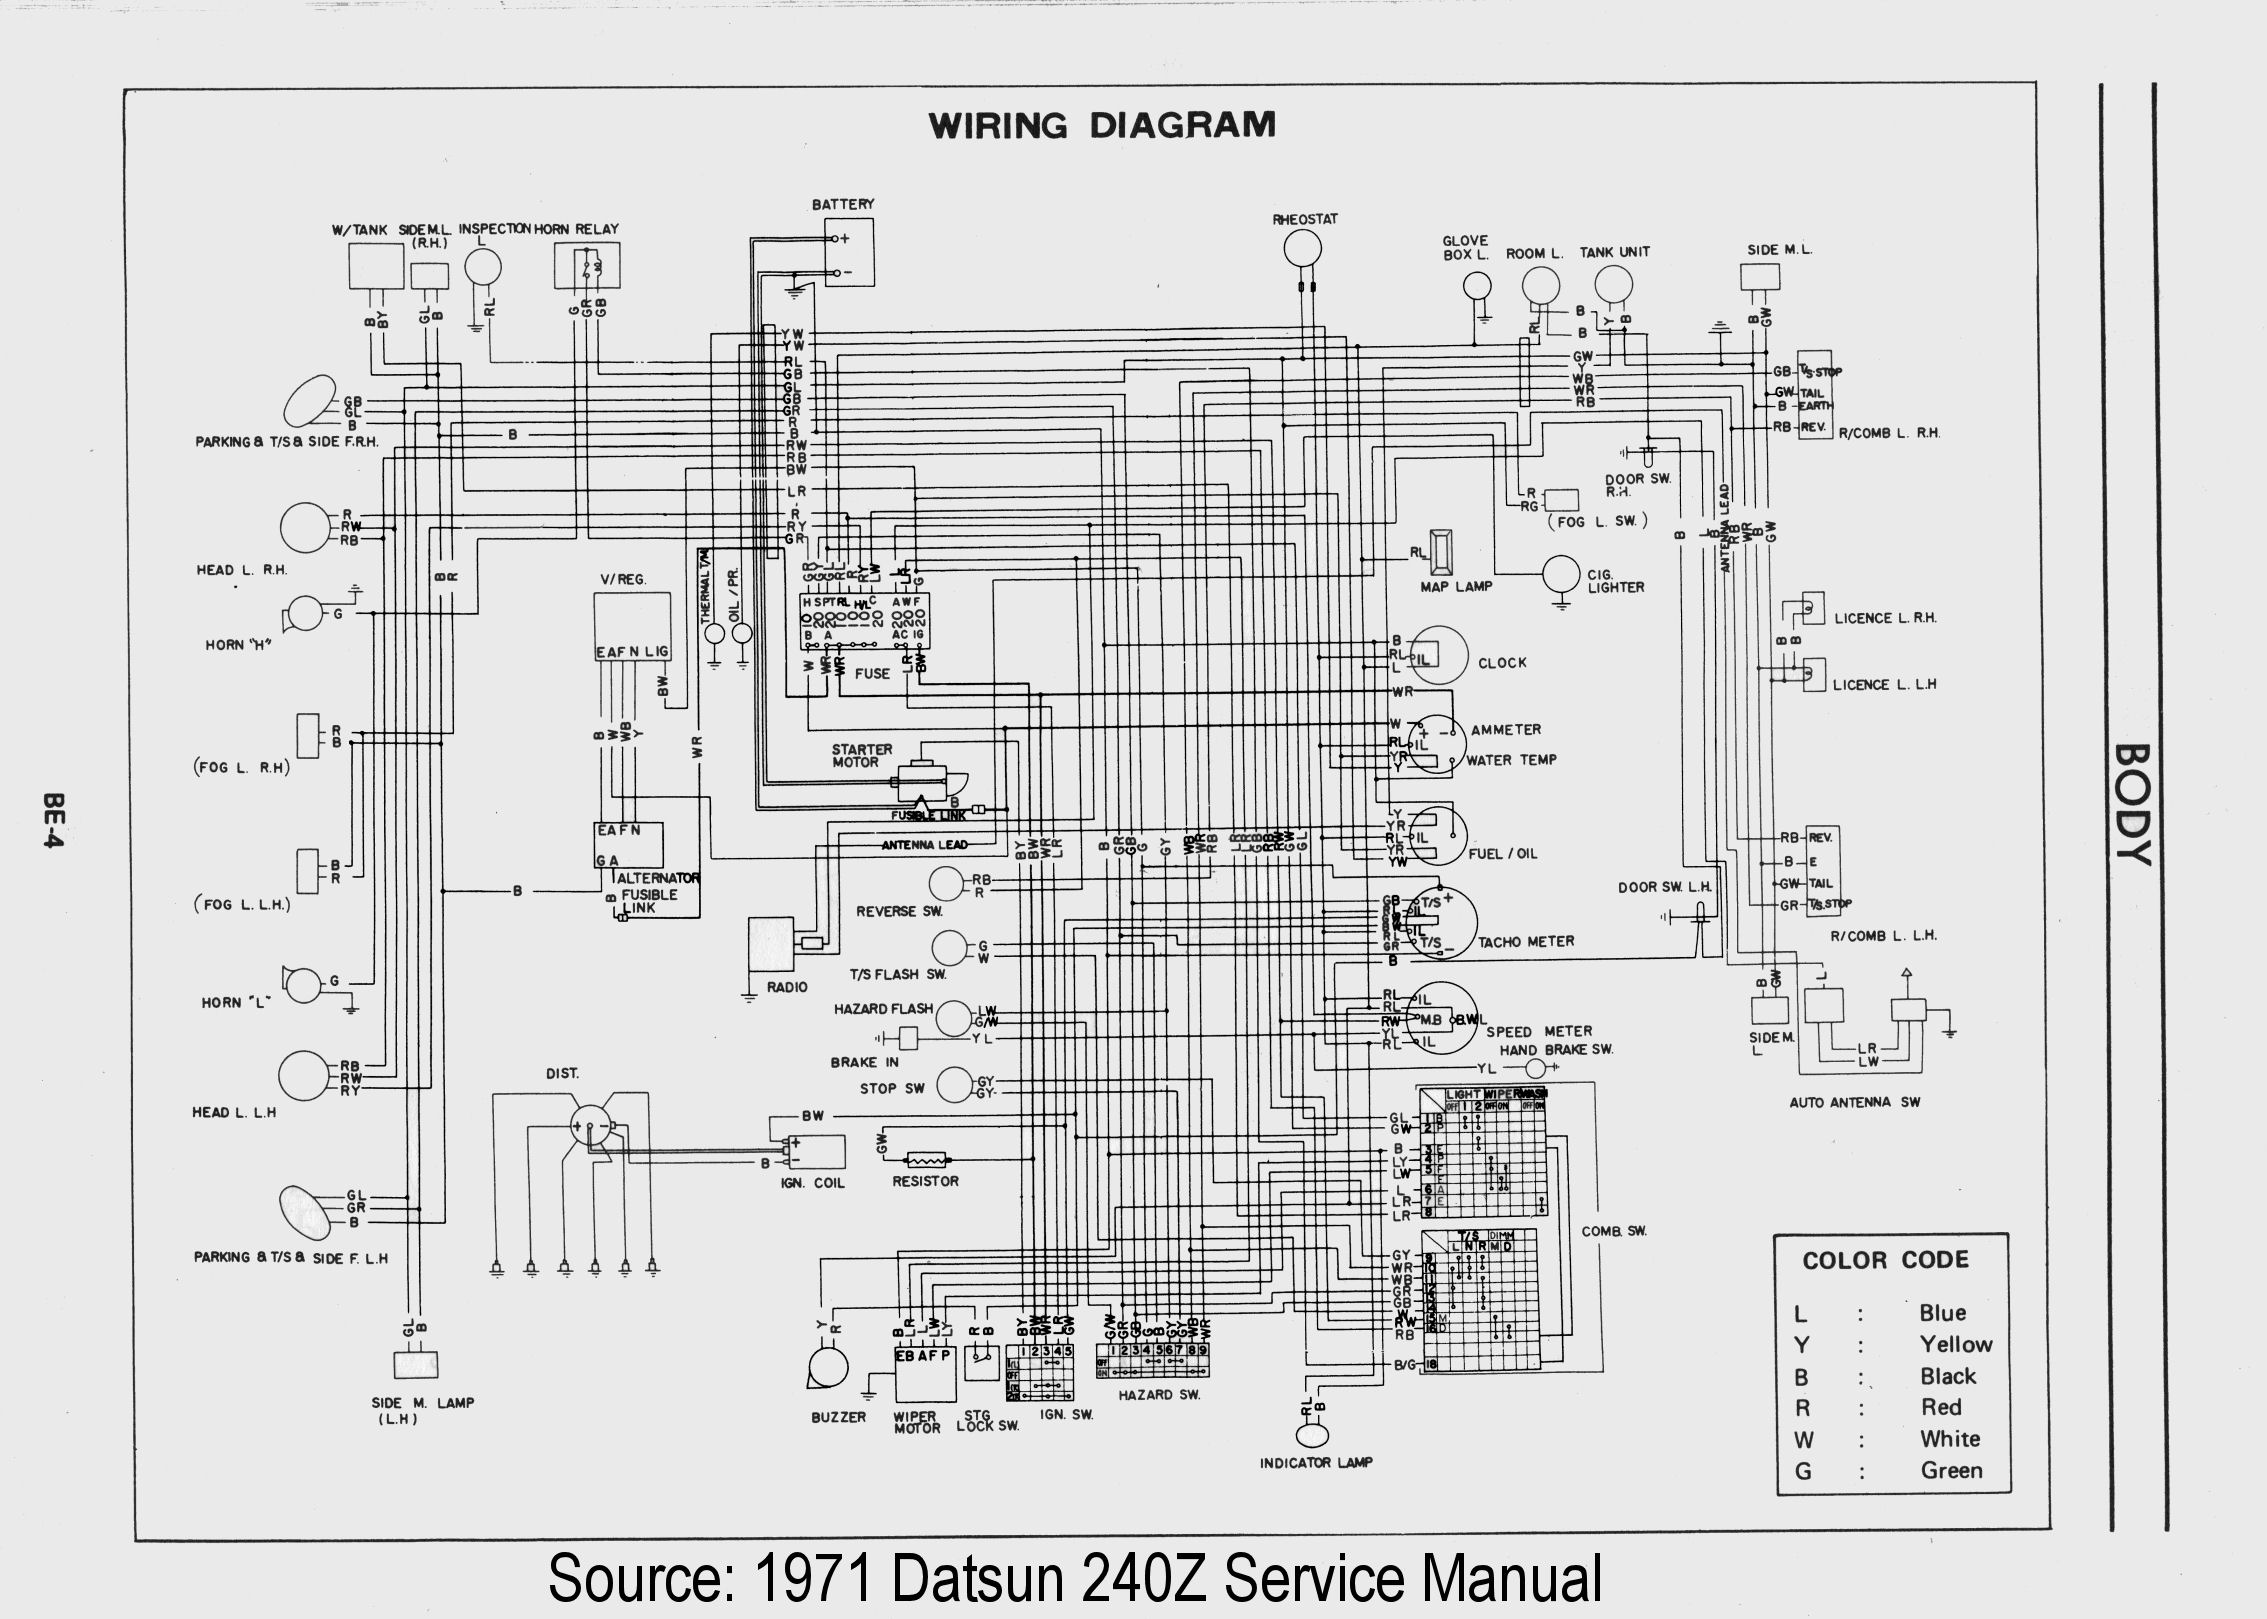 1976 Datsun 280z Wiring Diagram : 31 Wiring Diagram Images